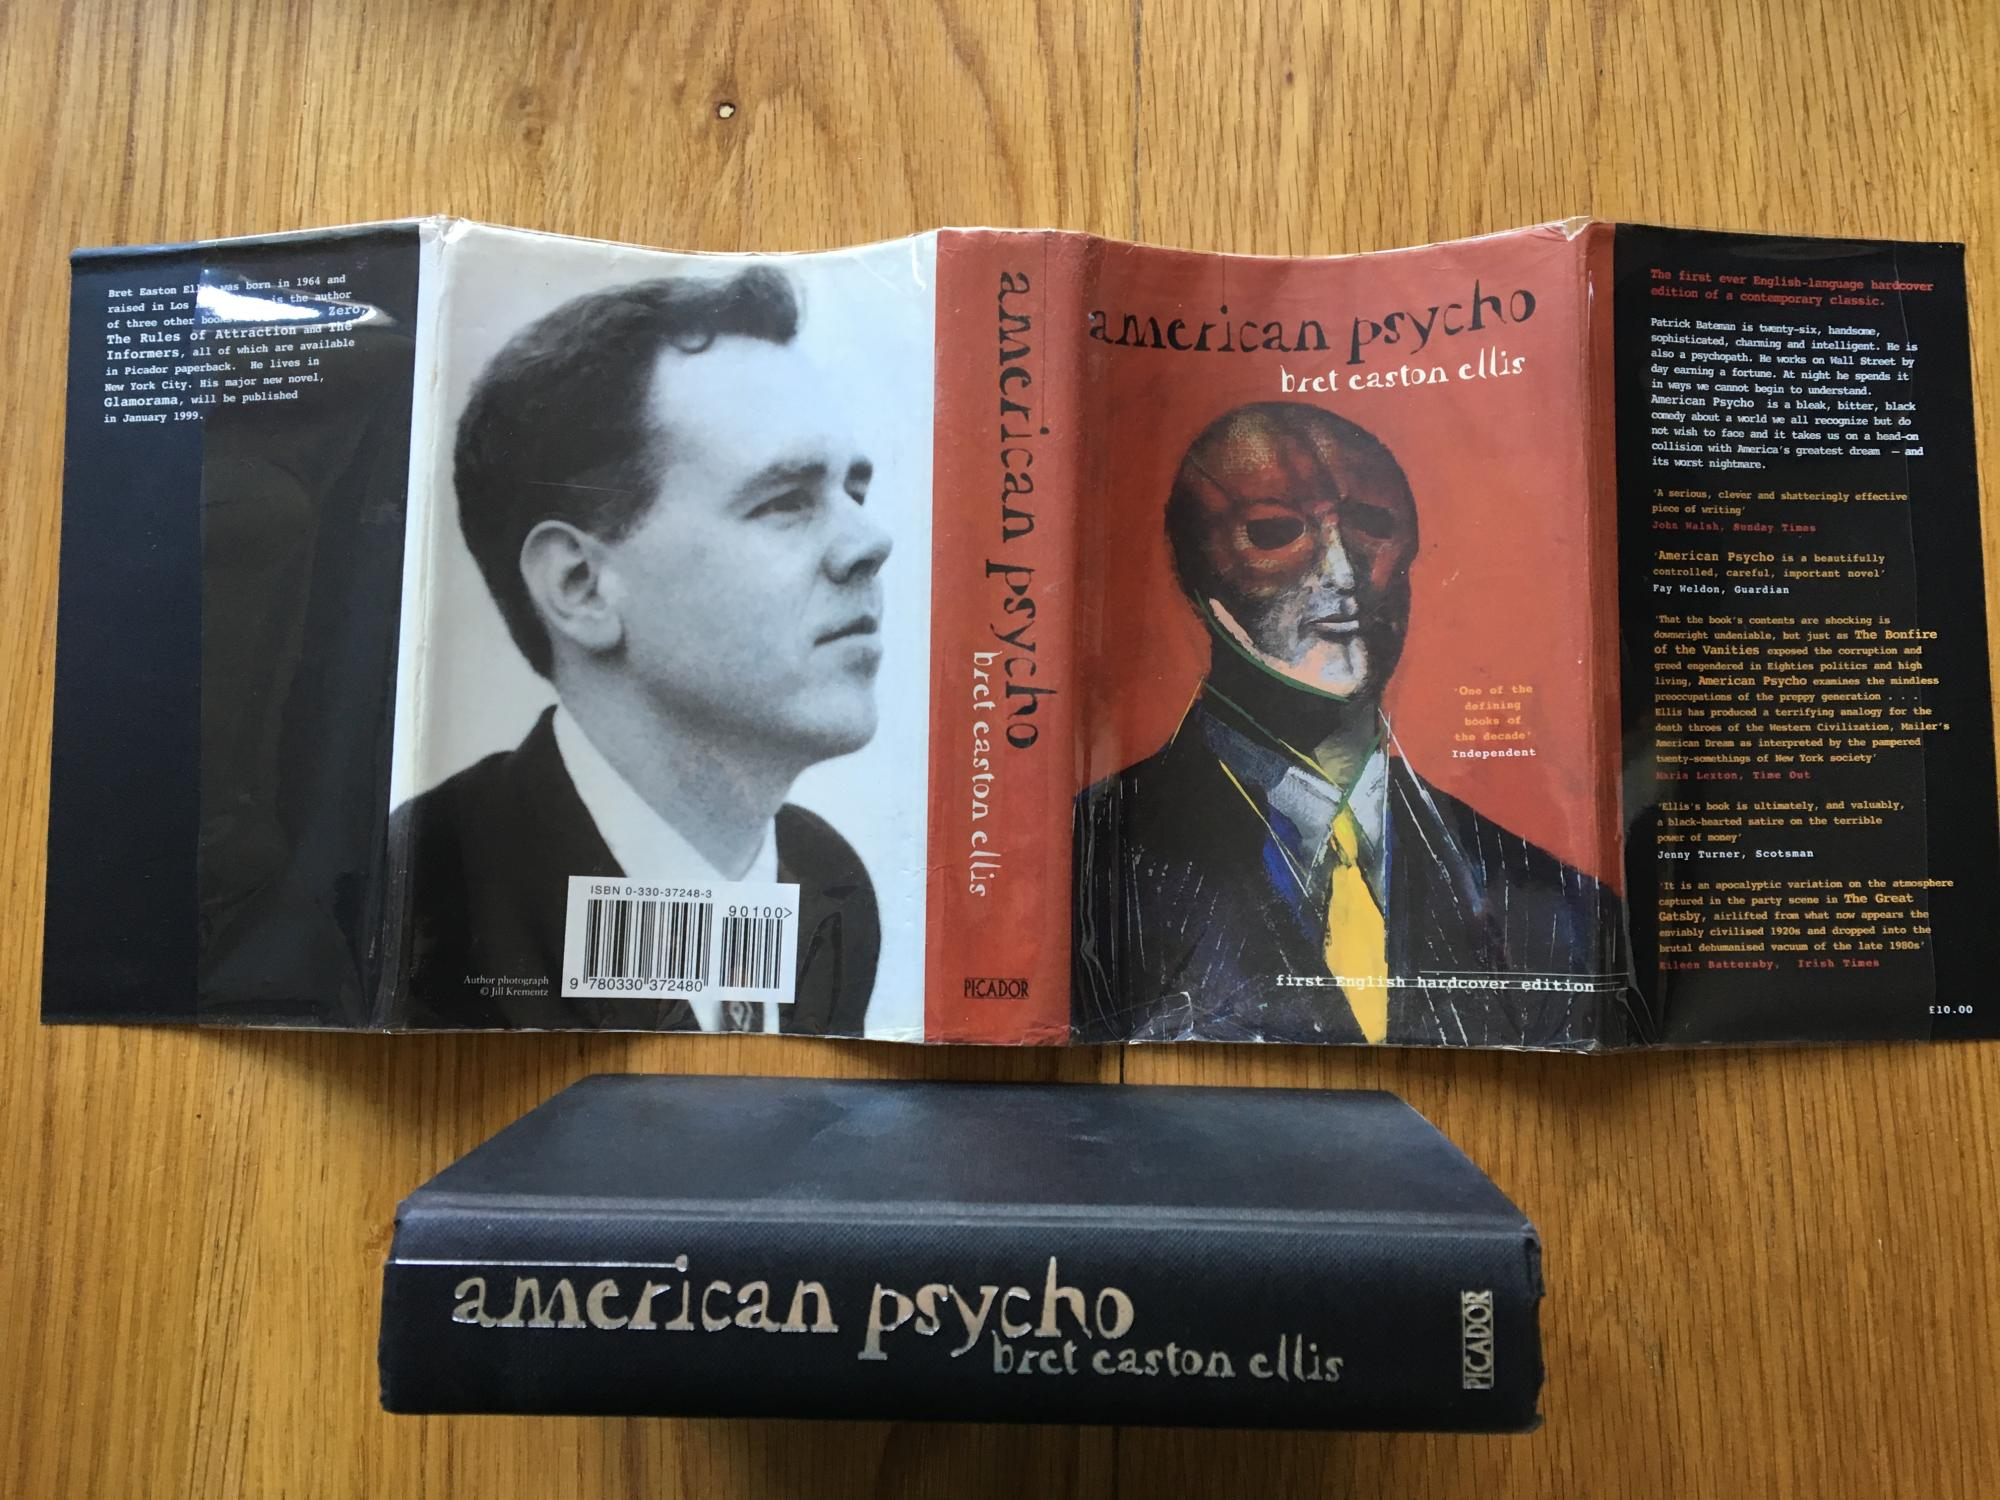 the world of patrick batesman american psycho by bret easton ellis Author bret easton ellis' most famous literary creation, patrick bateman from his 1991 novel american psycho, has been depicted in many formsas christian bale in mary harron's film as.